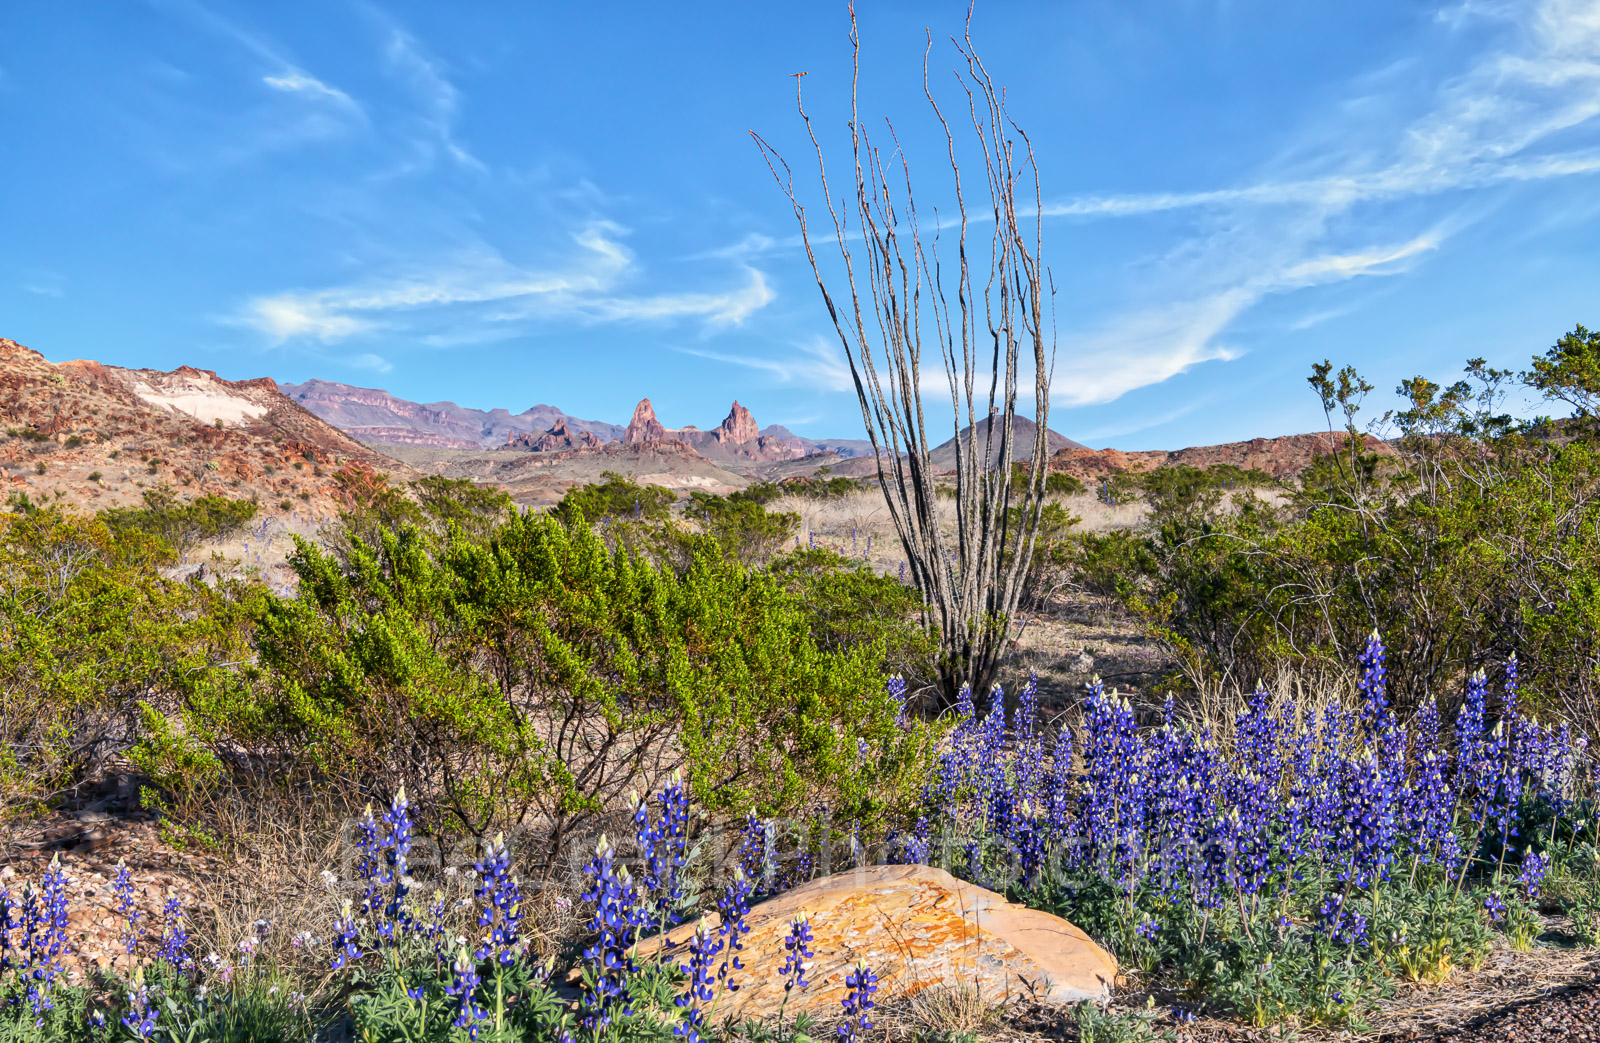 big bend bluebonnets, octillo, shrubs, Mule Ear, big bend national park, wildflowers, desert, landscape, mountains, west texas, texas bluebonnets, chiso bluebonnets, texas wildflowers,, photo